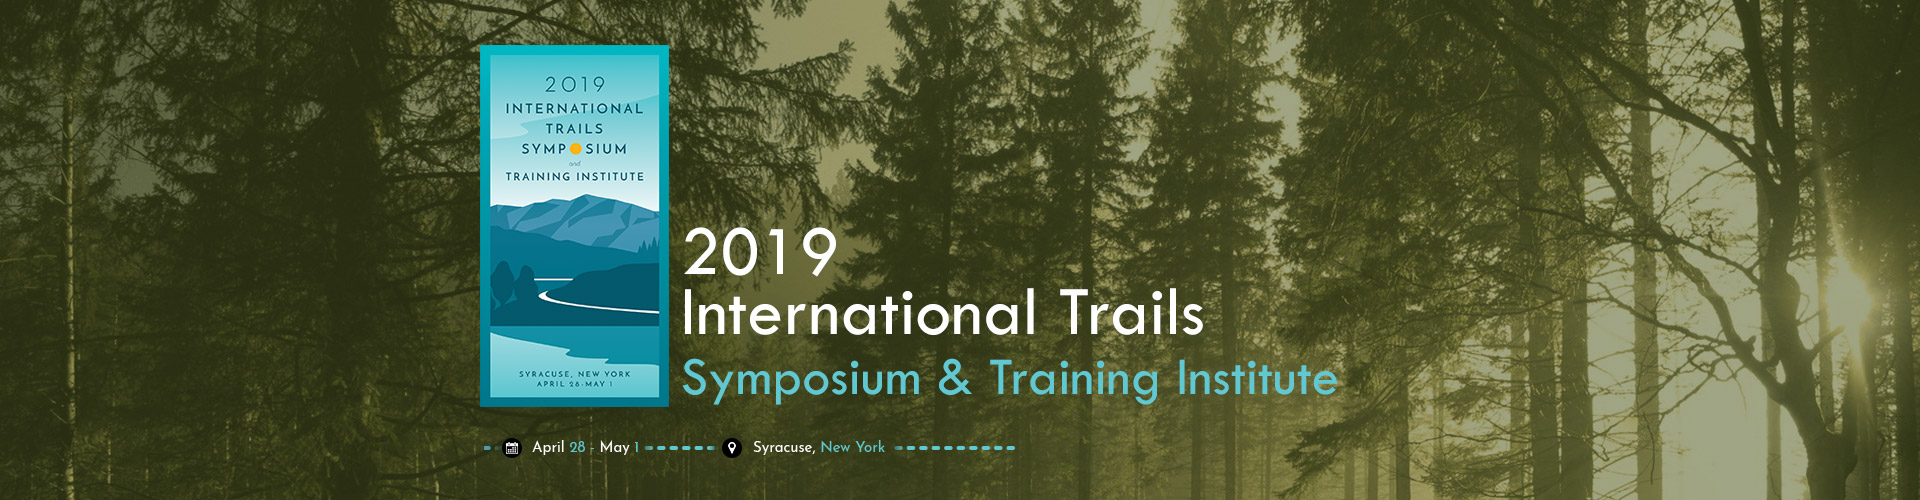 2019 International Trails Symposium & Training Institute